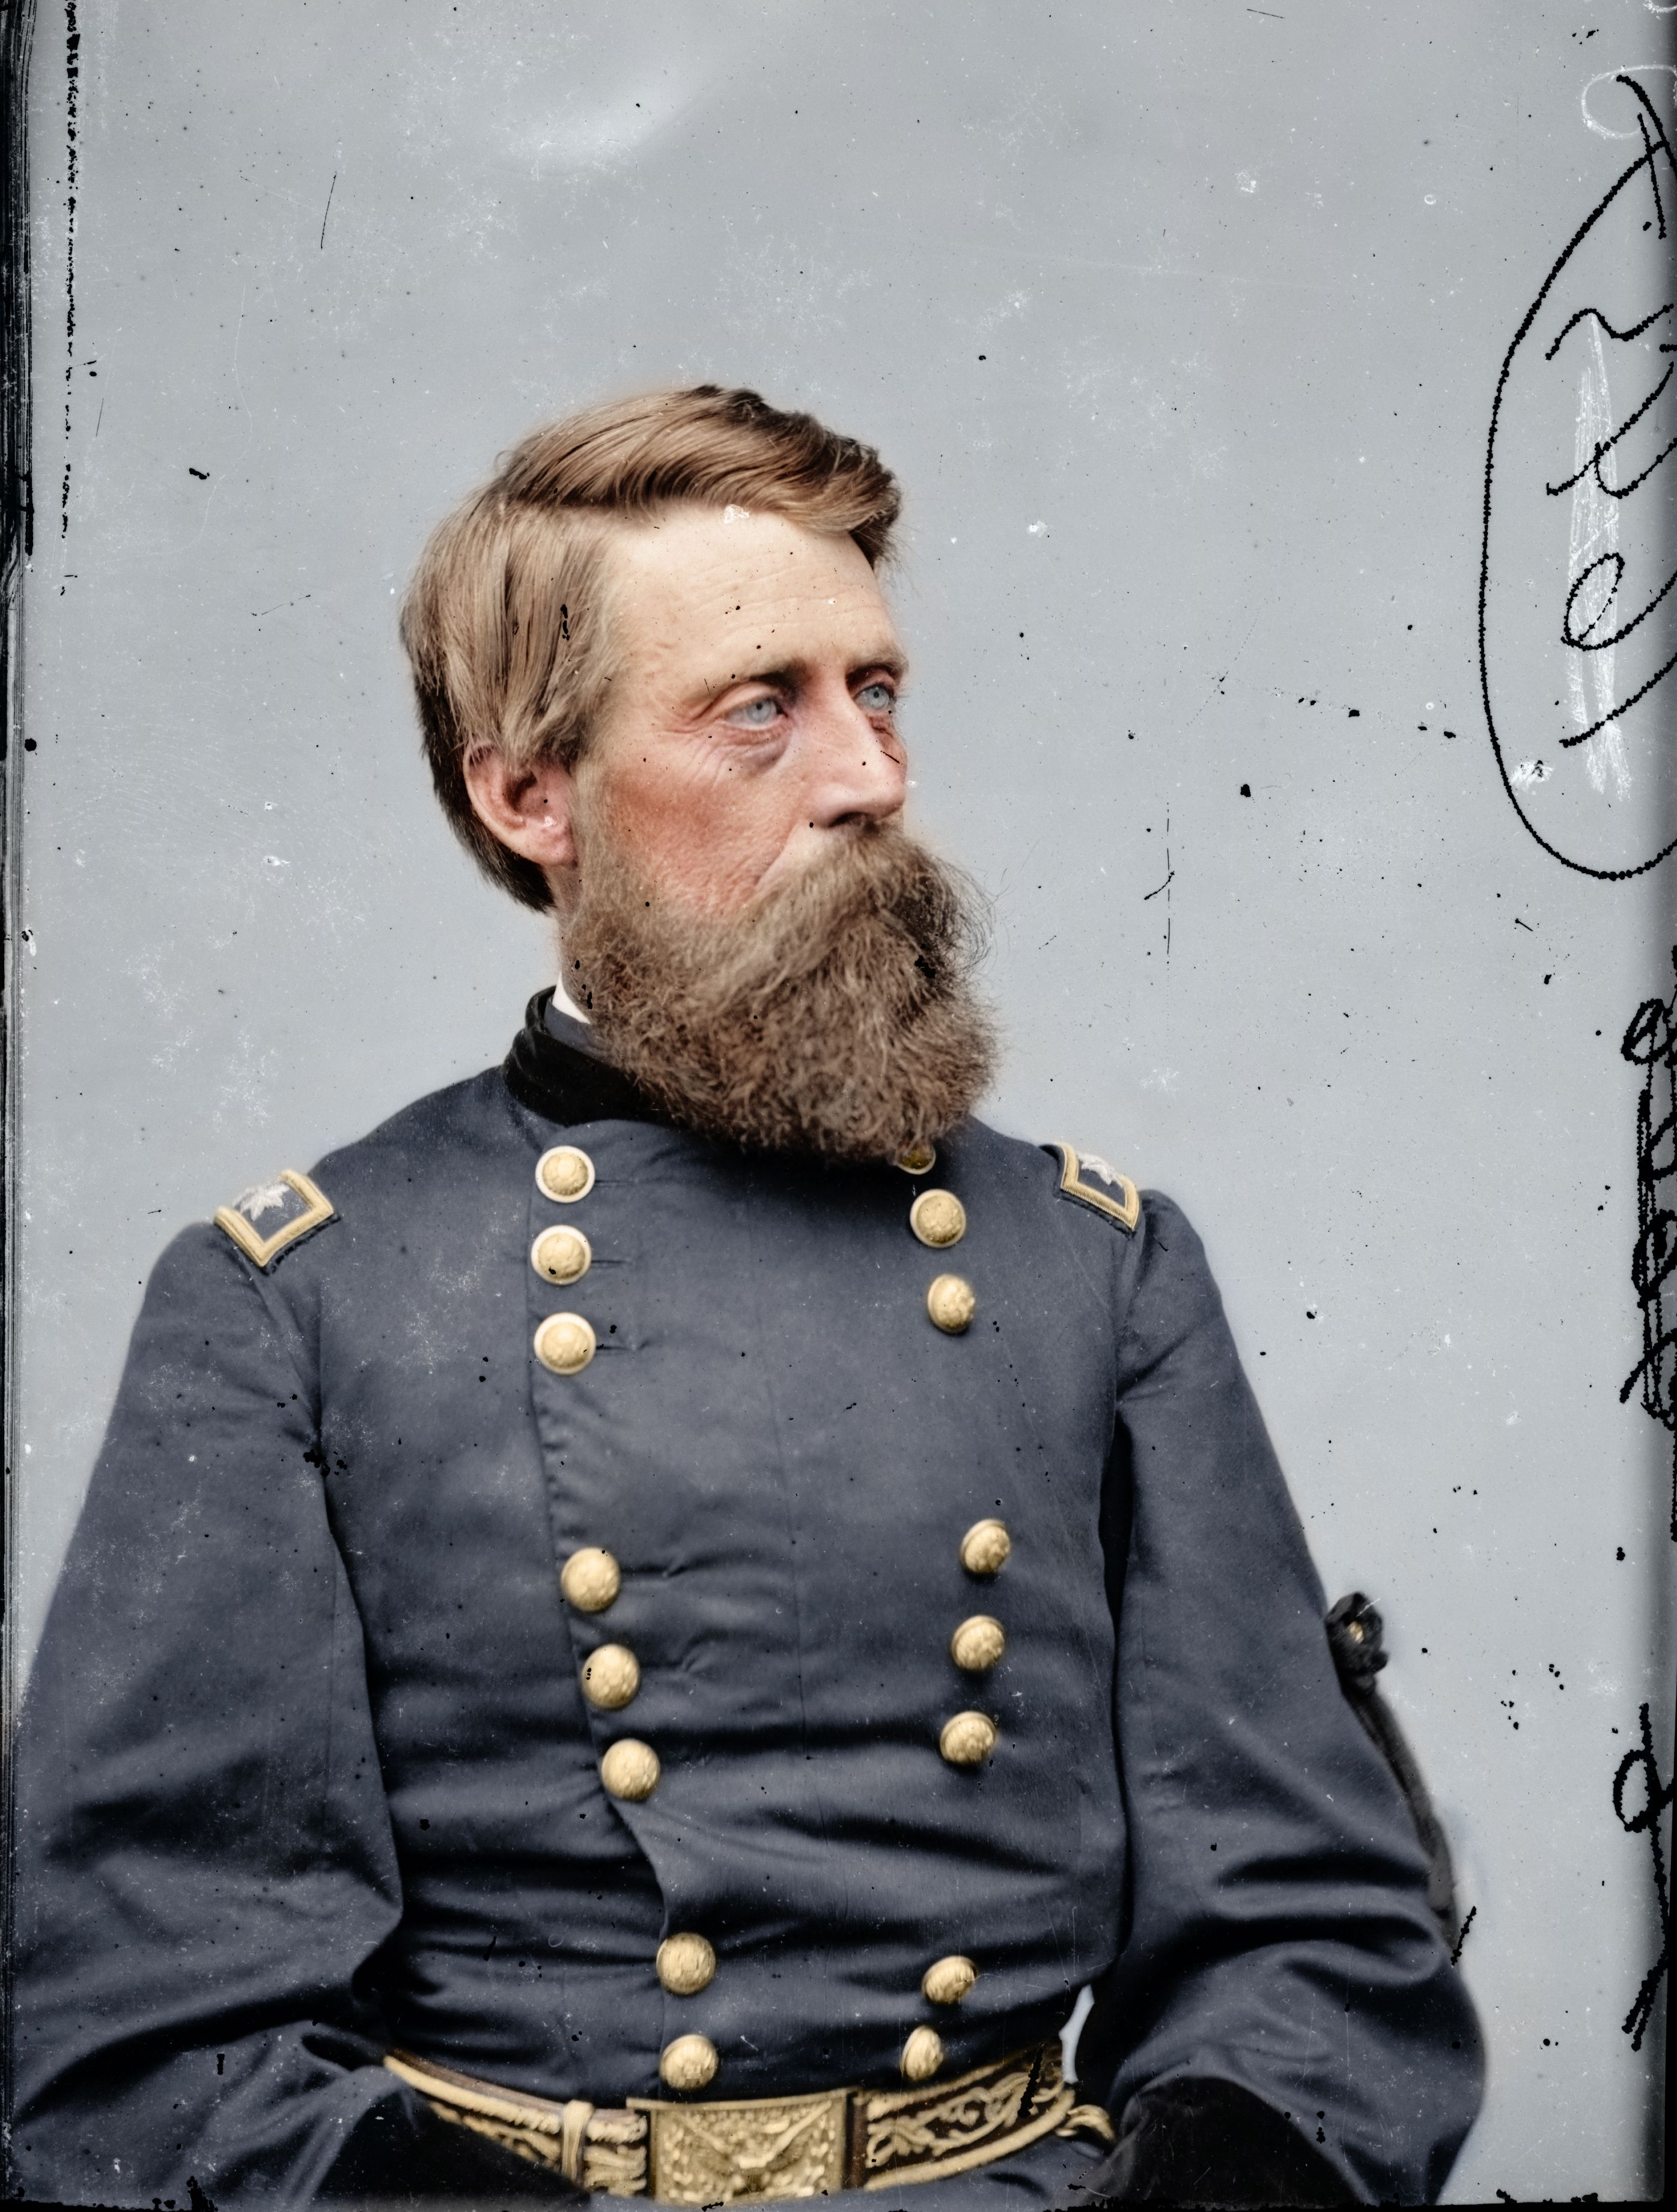 Major General Jefferson C. Davis - His accomplishments were overshadowed by him killing a fellow General, namely Major General William 'Bull' Nelson, in the autumn of 1862.